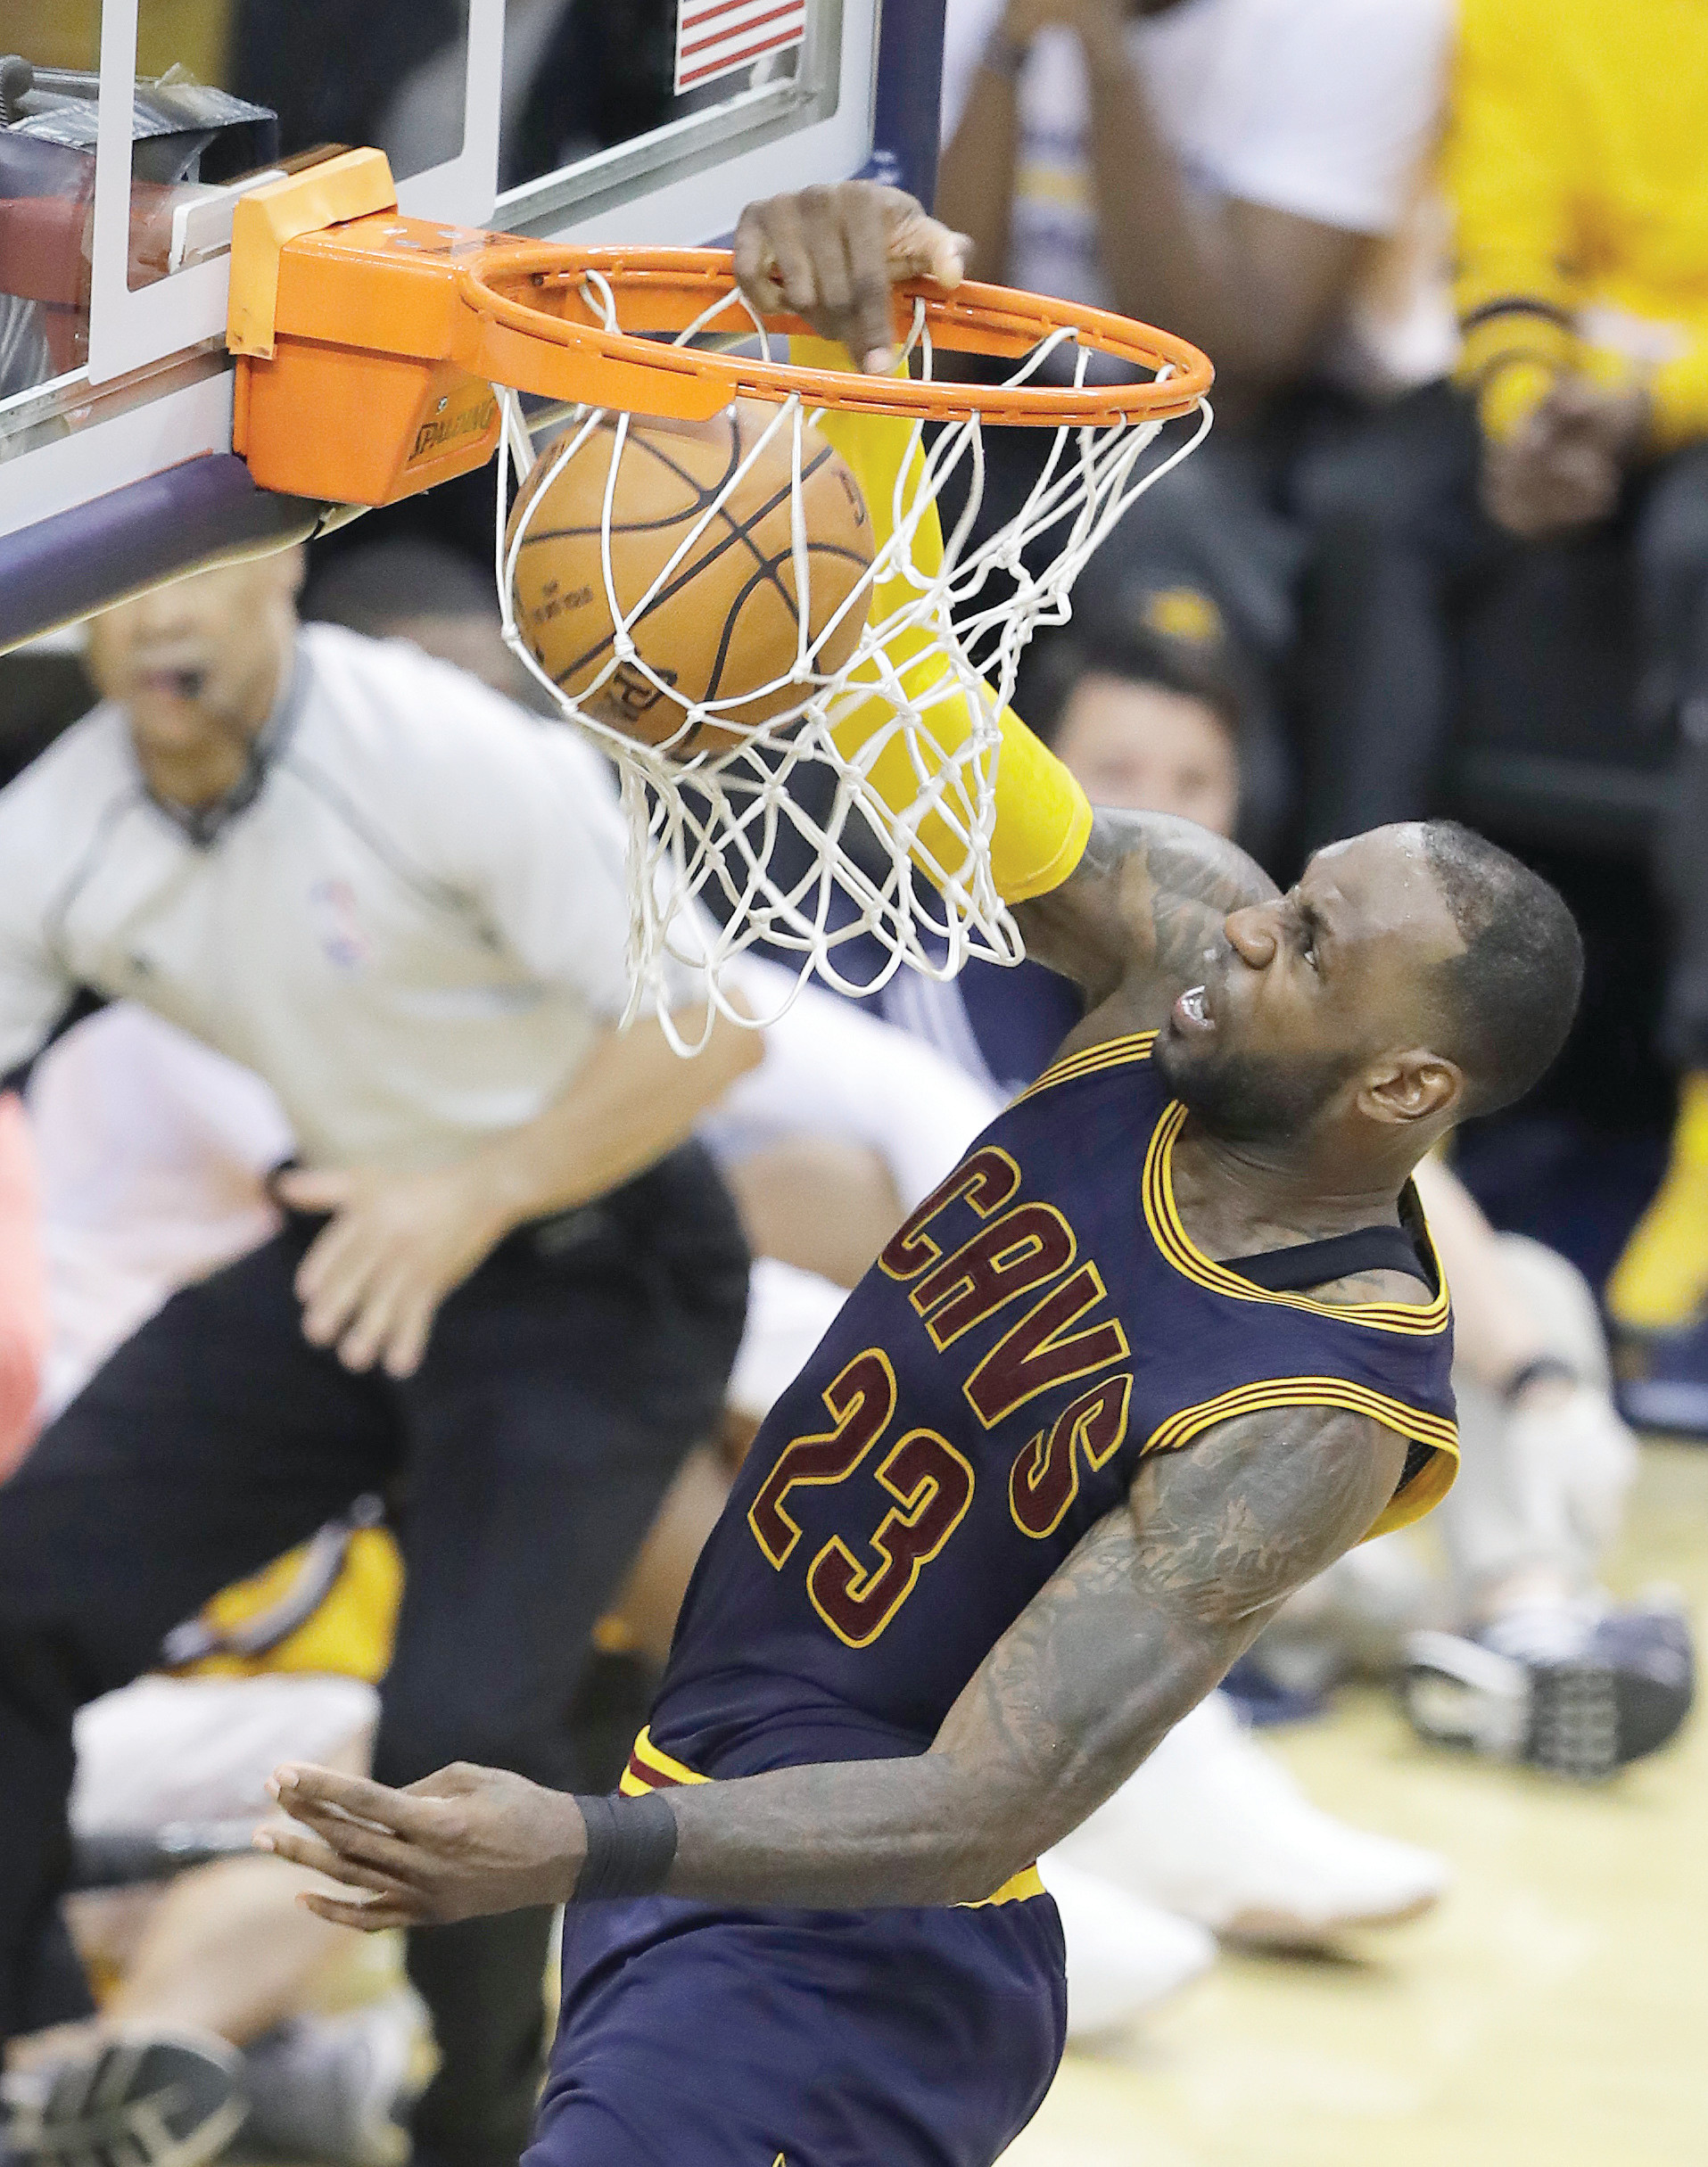 Cleveland forward LeBron James dunks during the second half of the Cavaliers' 119-114 victory over Indiana on Thursday in Game 3 of an Eastern Conference playoffs series in Indianapolis. The Cavs rallied from 26 points down to take a commanding 3-0 lead in the series.